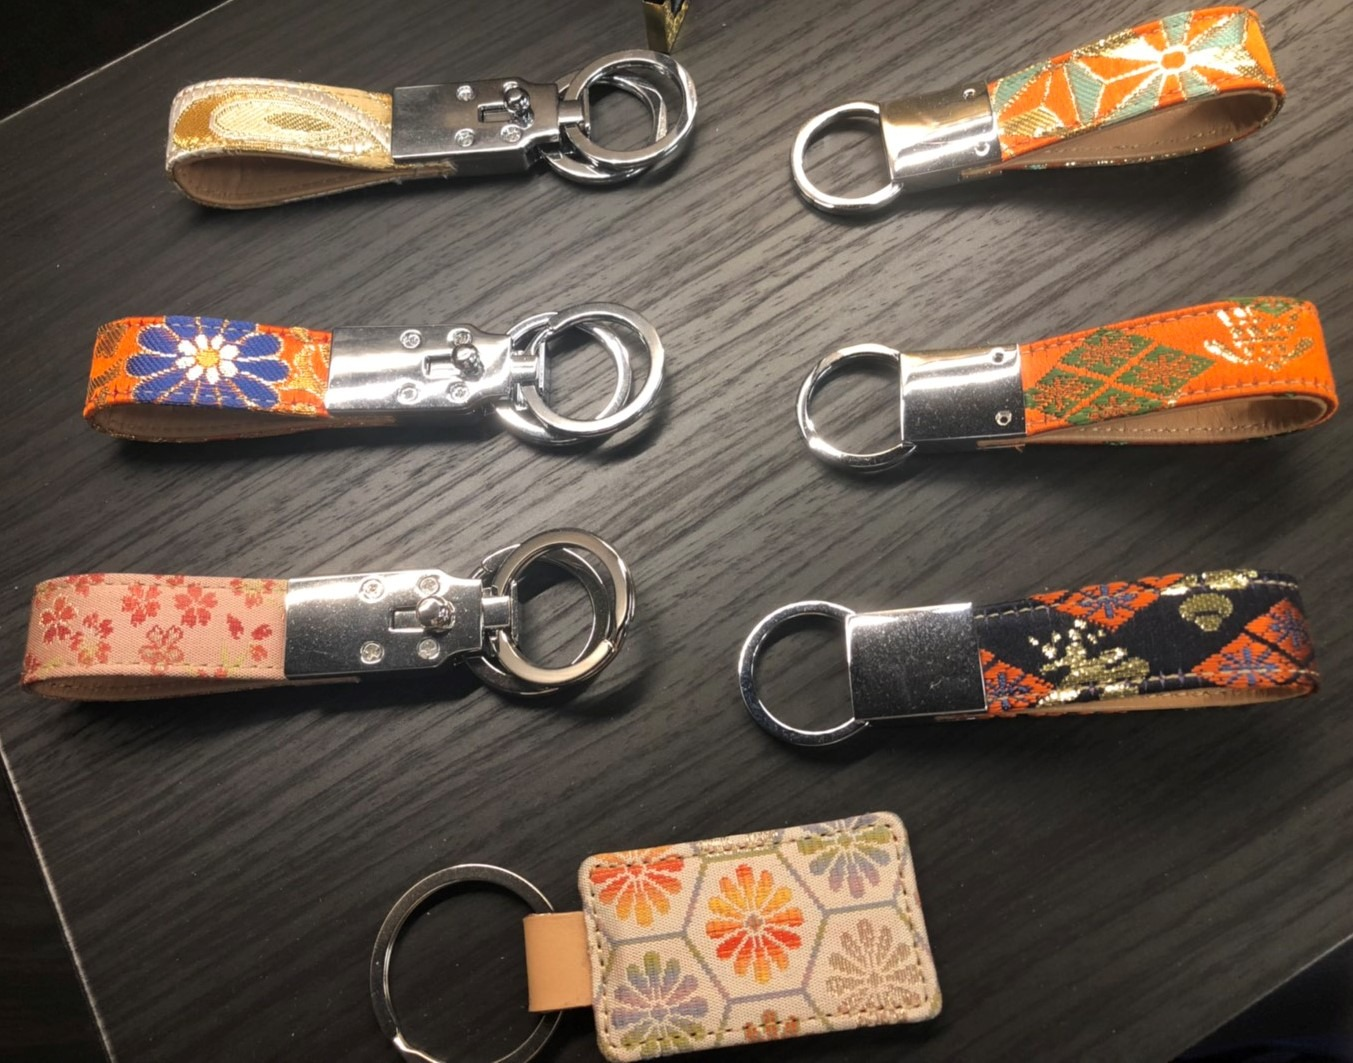 ◆◇◆Nishijin Textile Key-chains◆◇◆